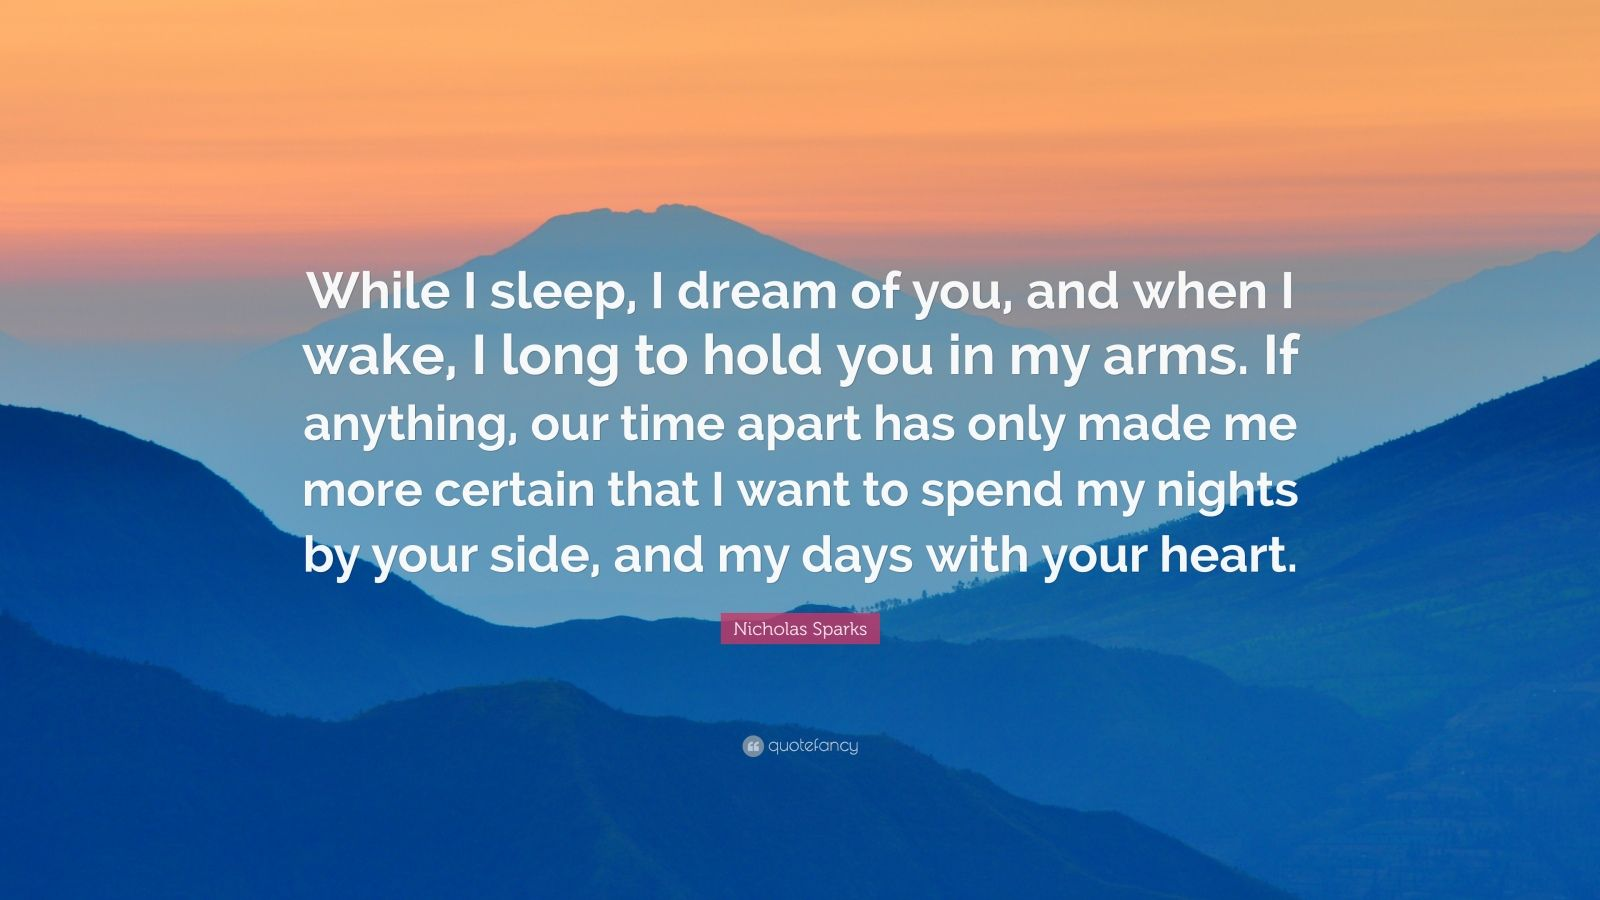 "Nicholas Sparks Quote: ""While I sleep, I dream of you, and when I wake, I long to hold you in my arms. If anything, our time apart has only made me more certain that I want to spend my nights by your side, and my days with your heart."""